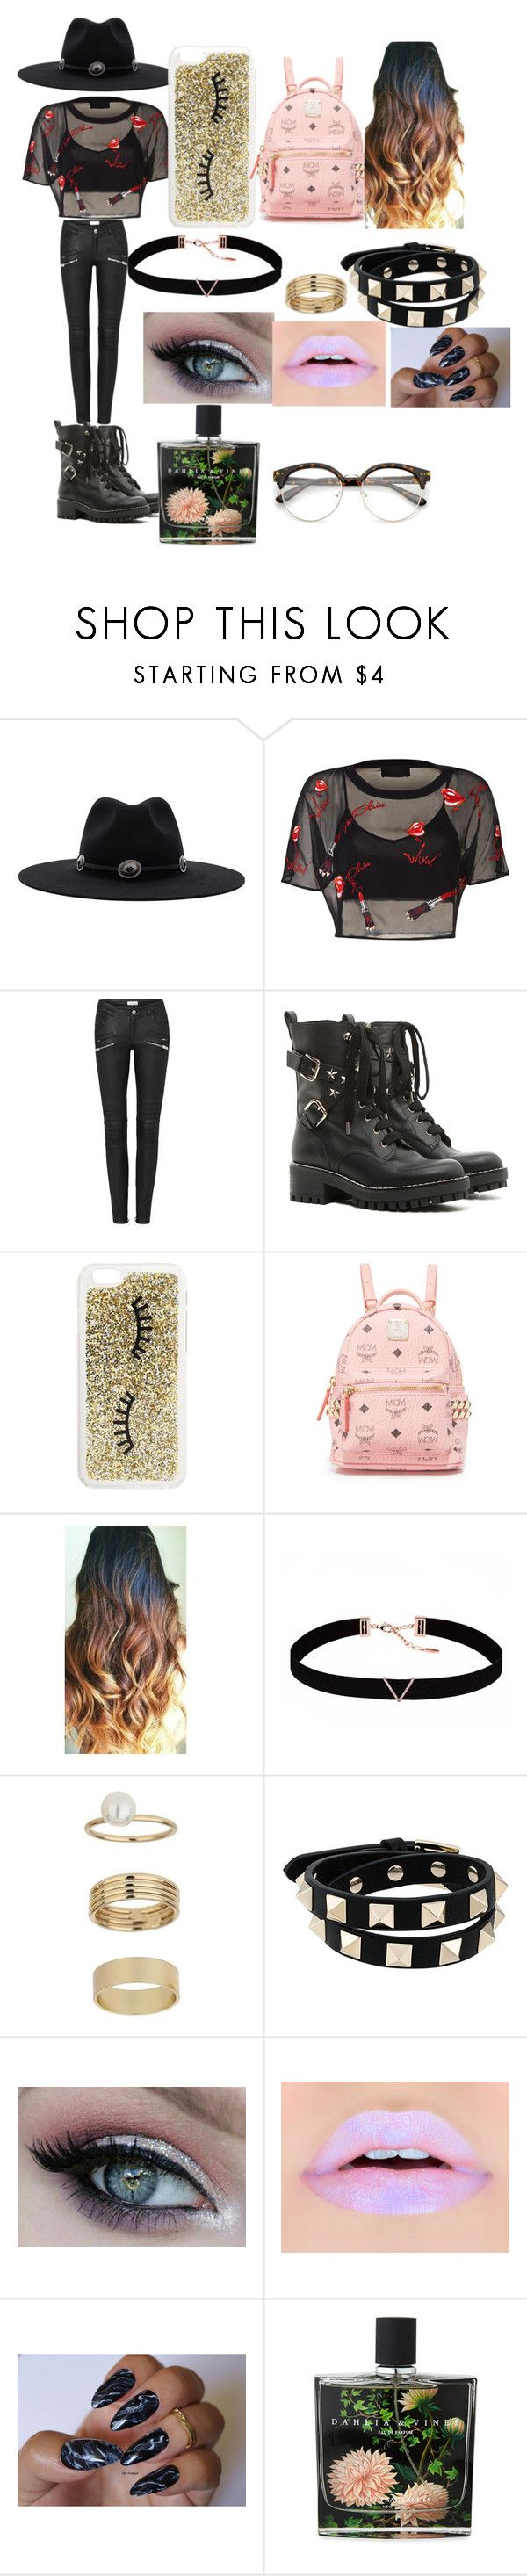 """Favorite Hat:Top Hat"" by hotpink179 ❤ liked on Polyvore featuring Brixton, RED Valentino, Miss Selfridge, MCM, Astrid & Miyu, Valentino, Nest Fragrances and fashionset"